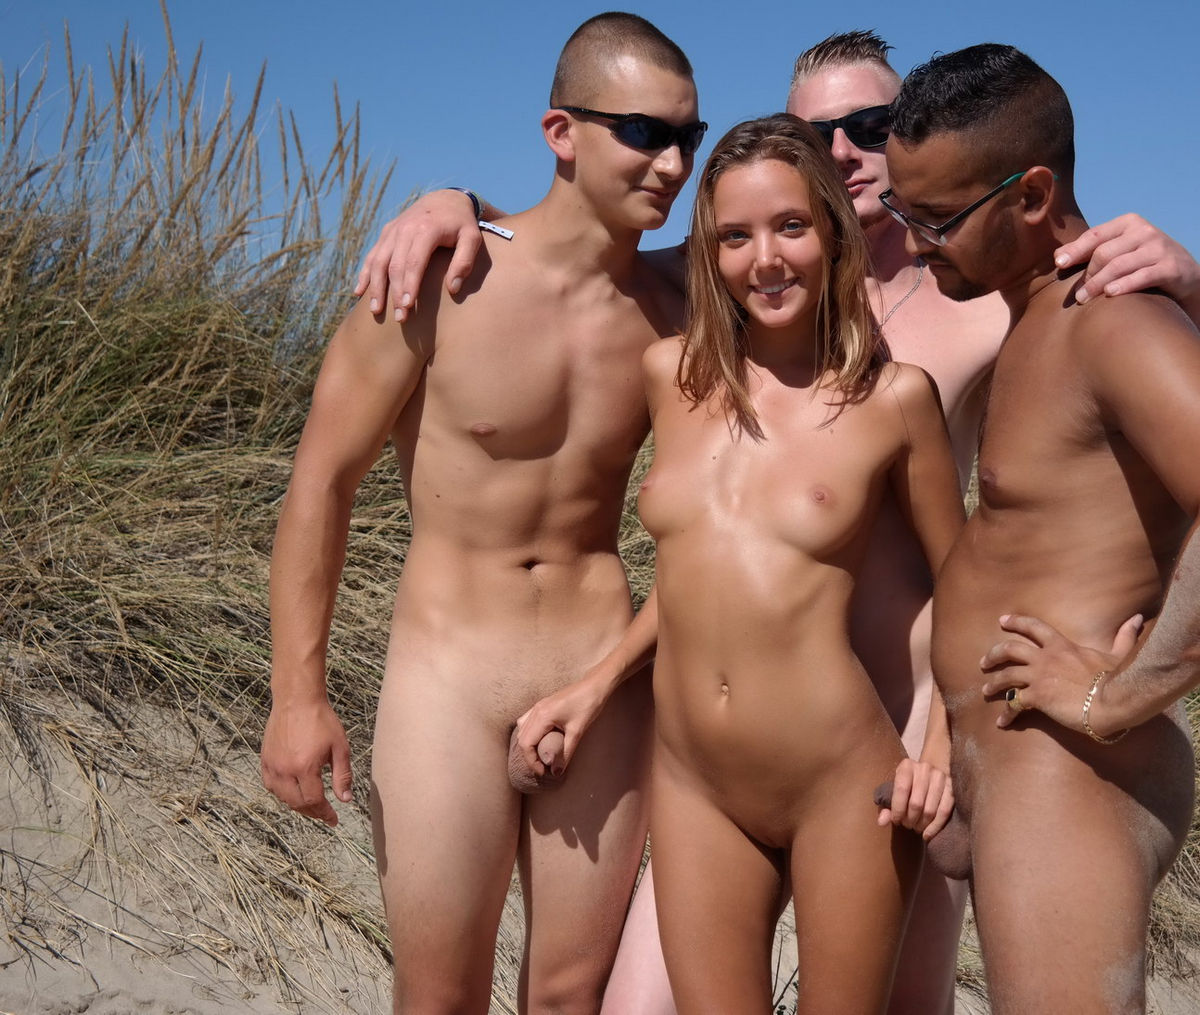 Beach young cum porno pics, fucking hot female asses